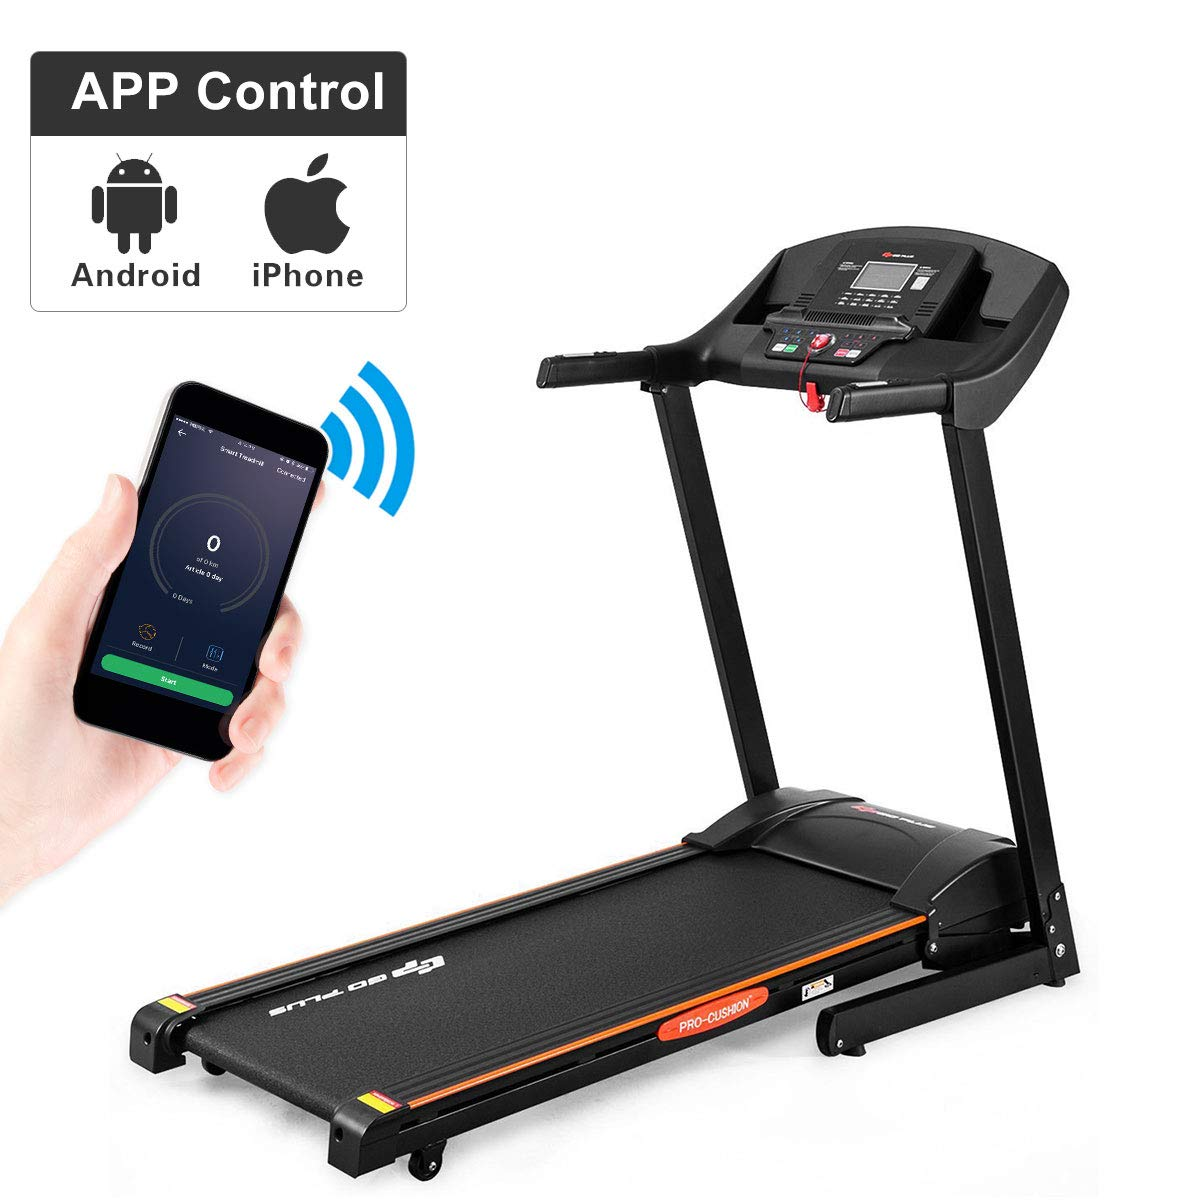 Goplus 2.5HP Electric Automatic Incline Treadmill, App Control and Large LCD Display, Foldable Jogging Walking Running…